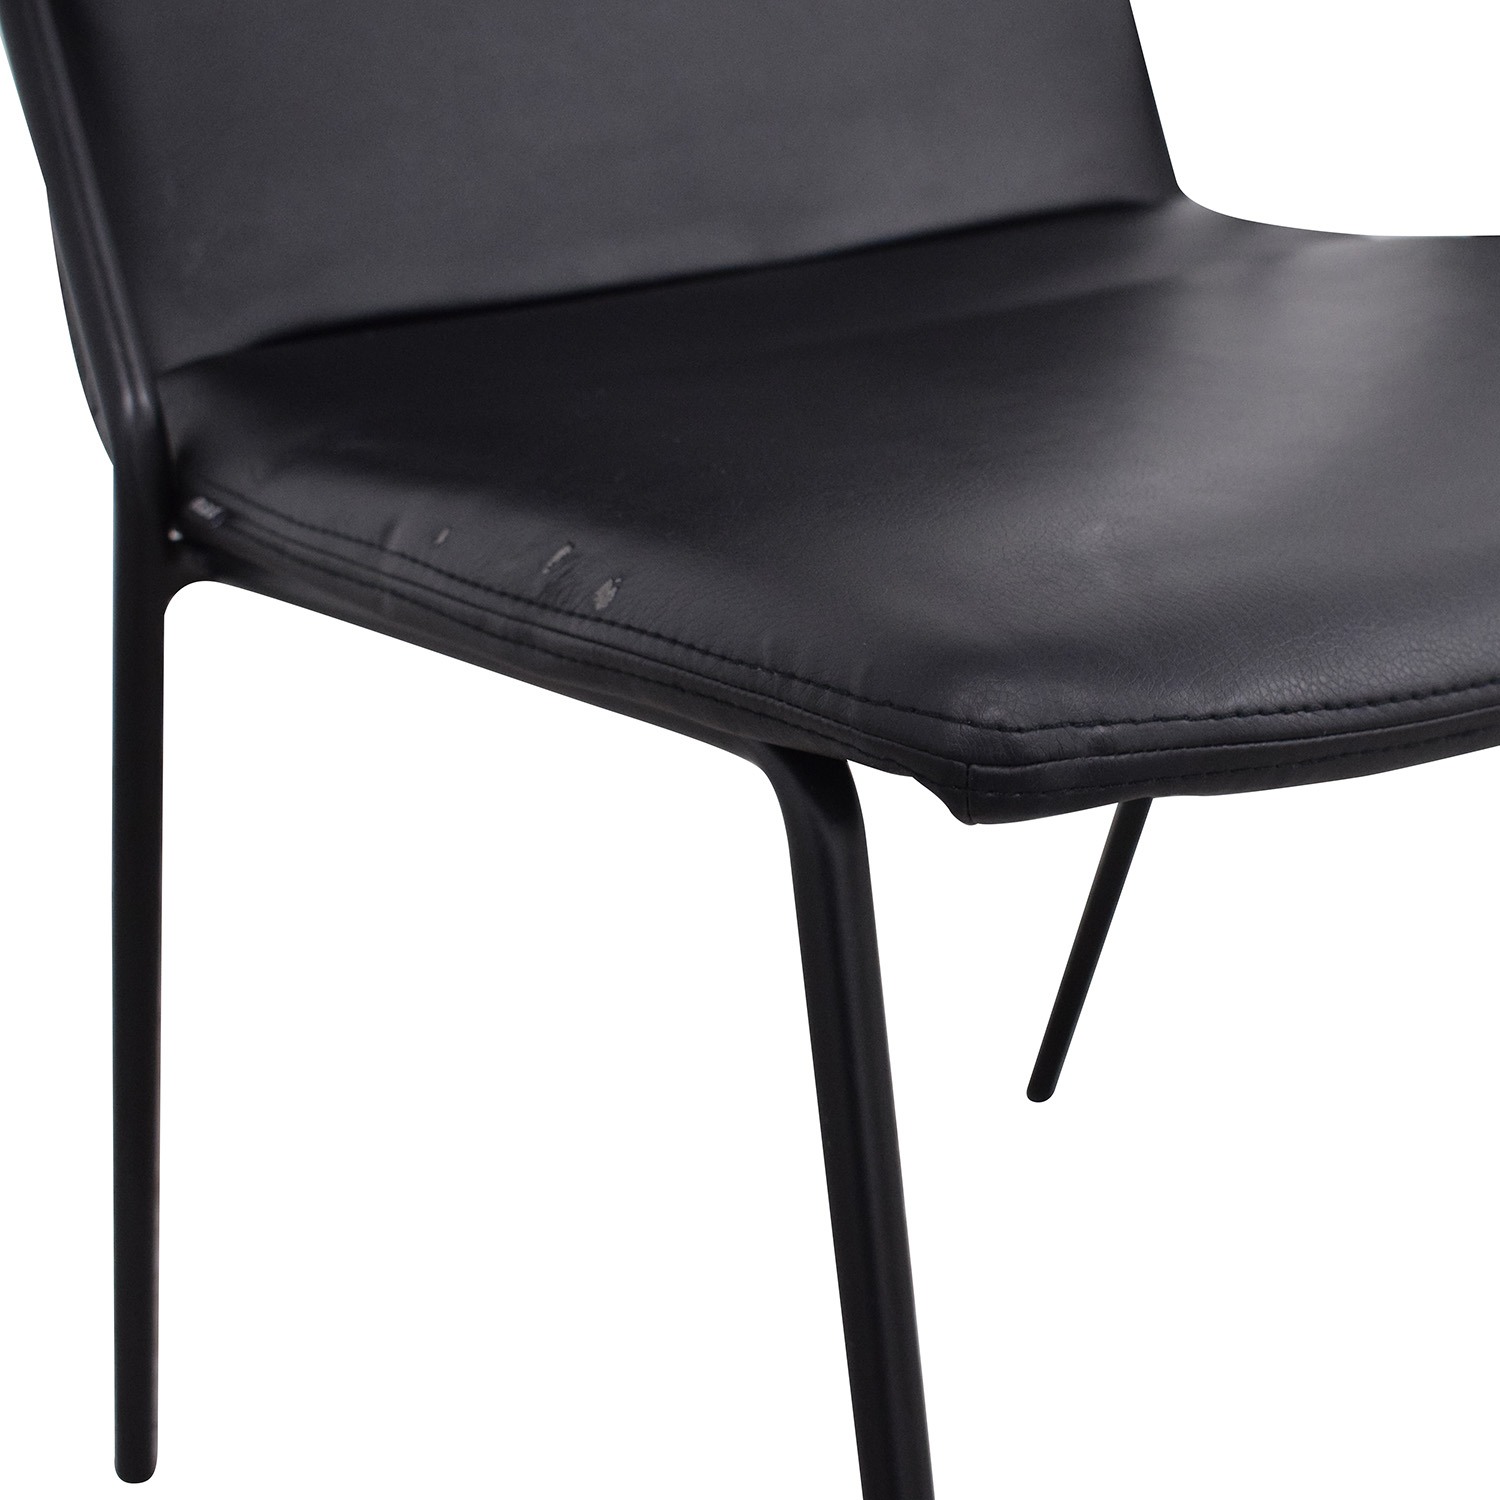 buy m.a.d. Black Sling Upholstered Chairs m.a.d. Dining Chairs